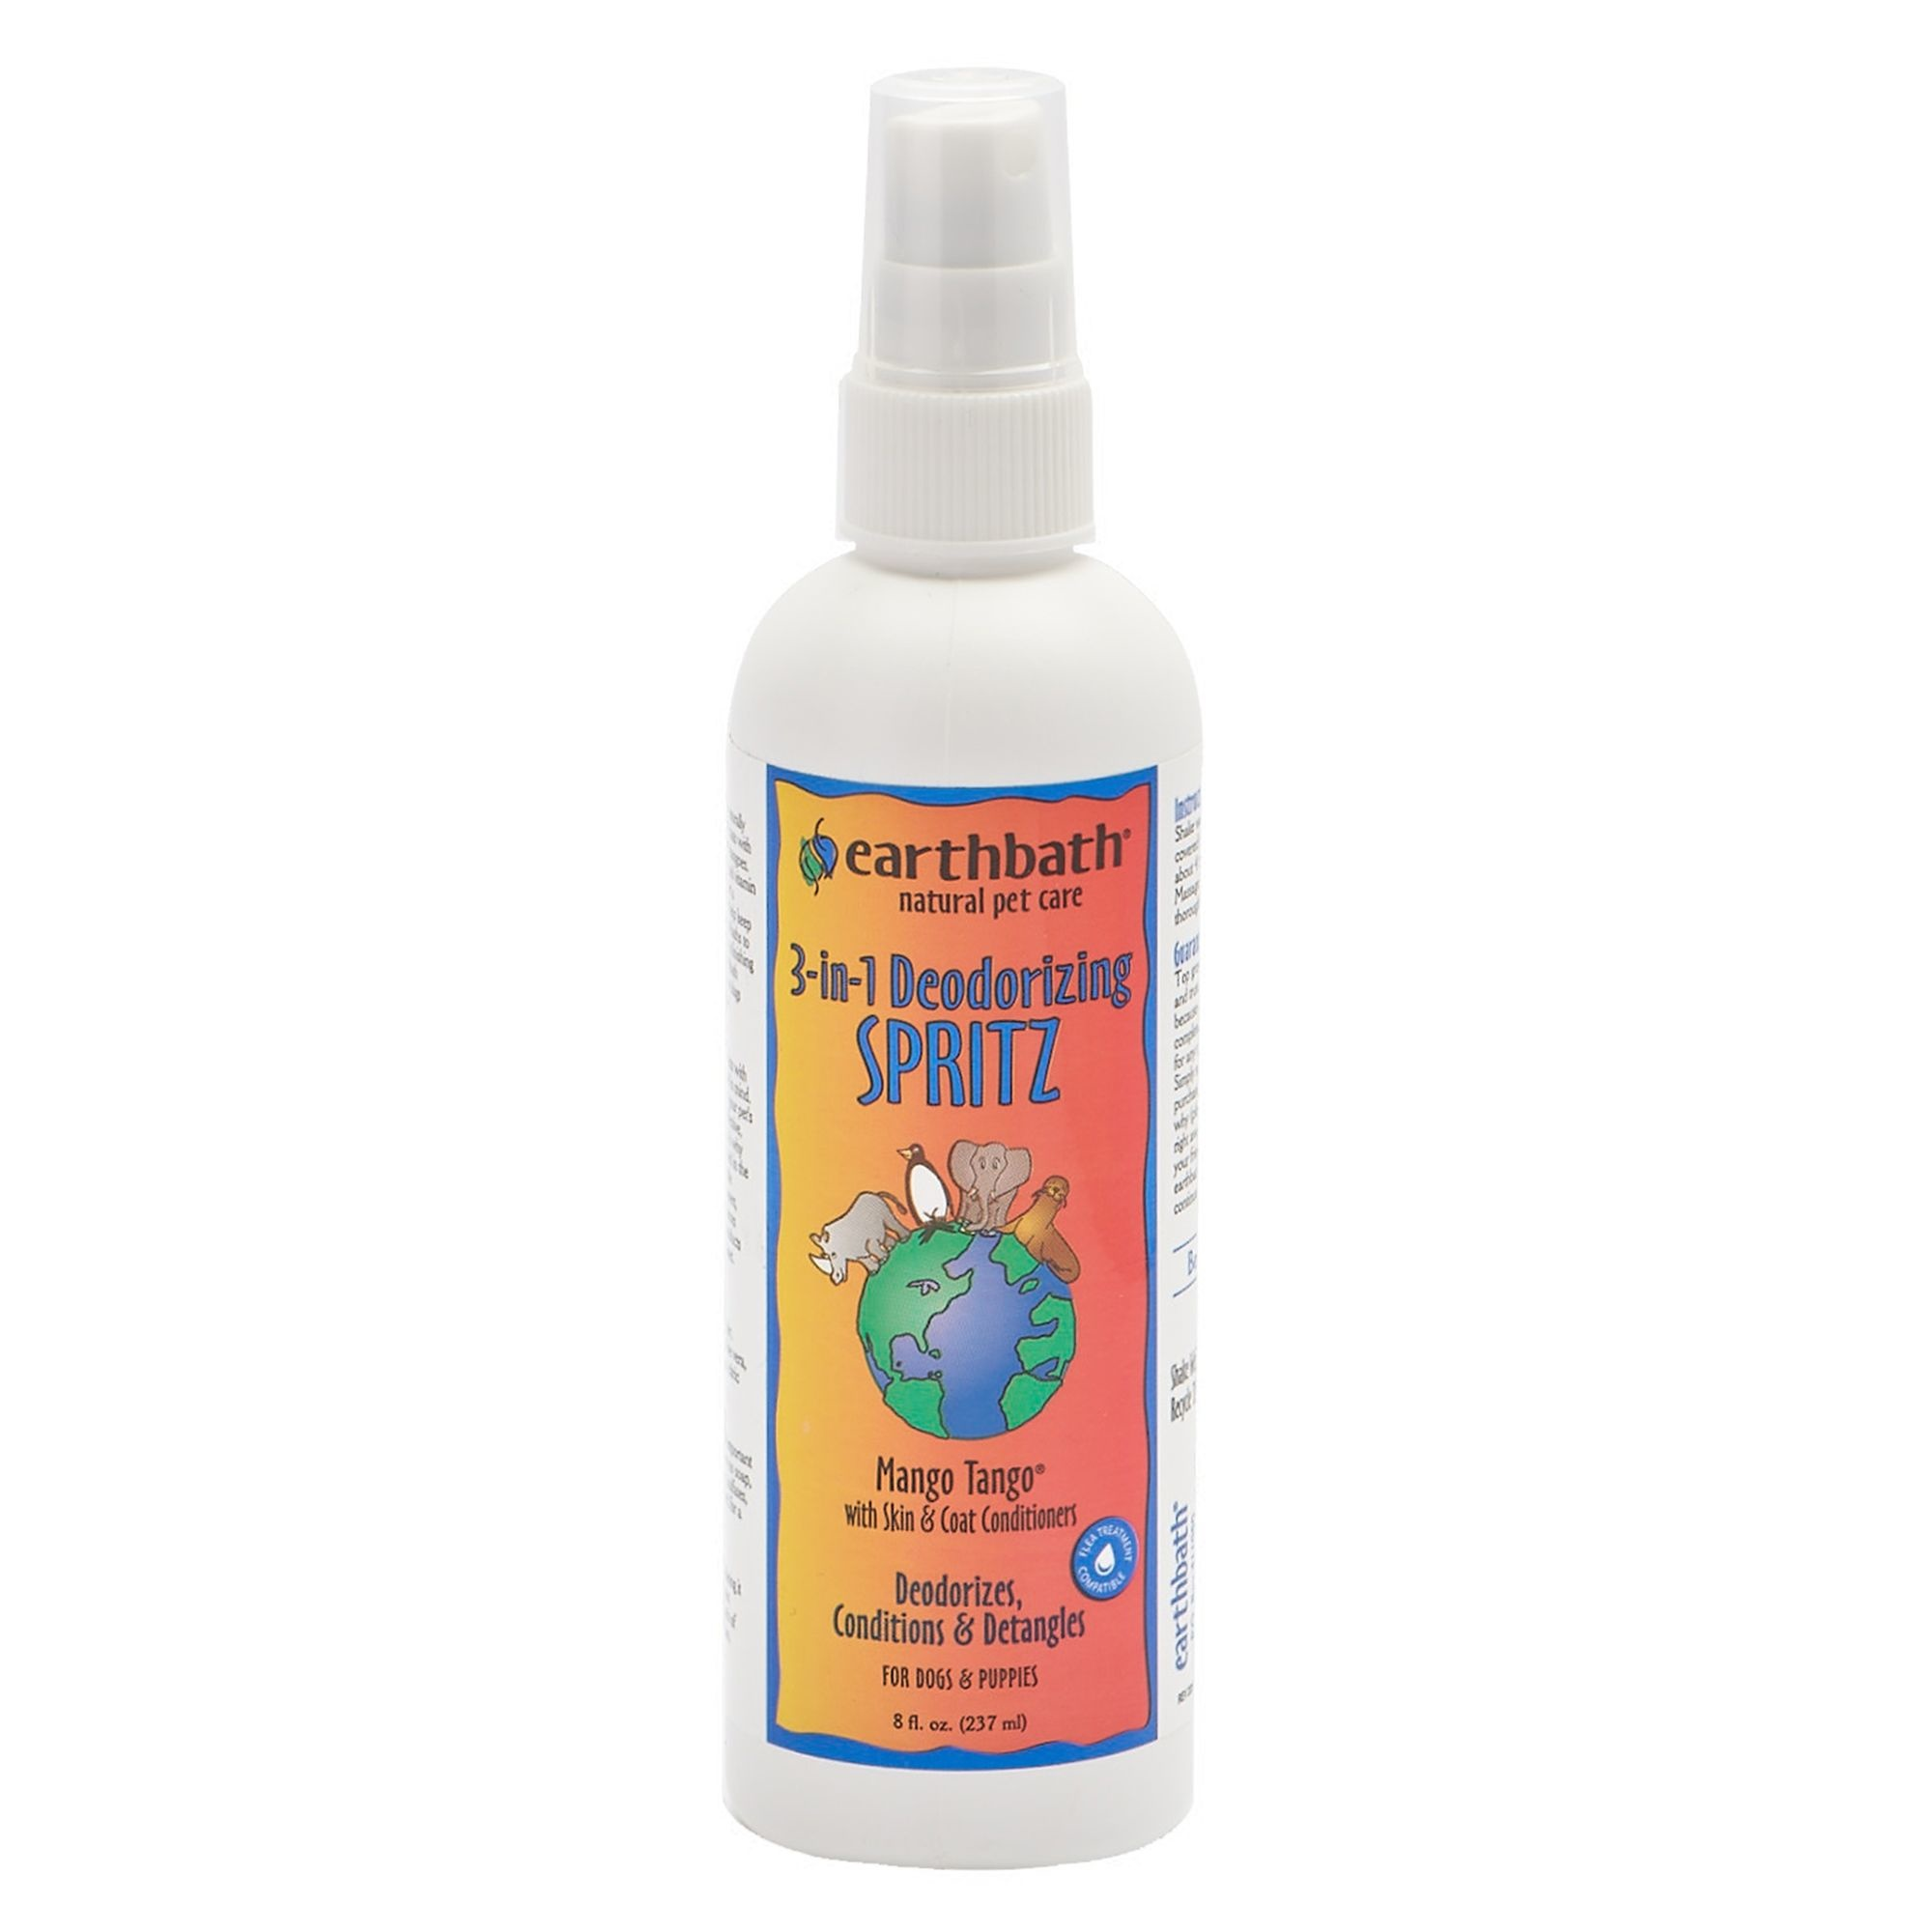 Earthbath Earthbath 3-in-1 Mango Tango Deodorizing Spritz 8oz